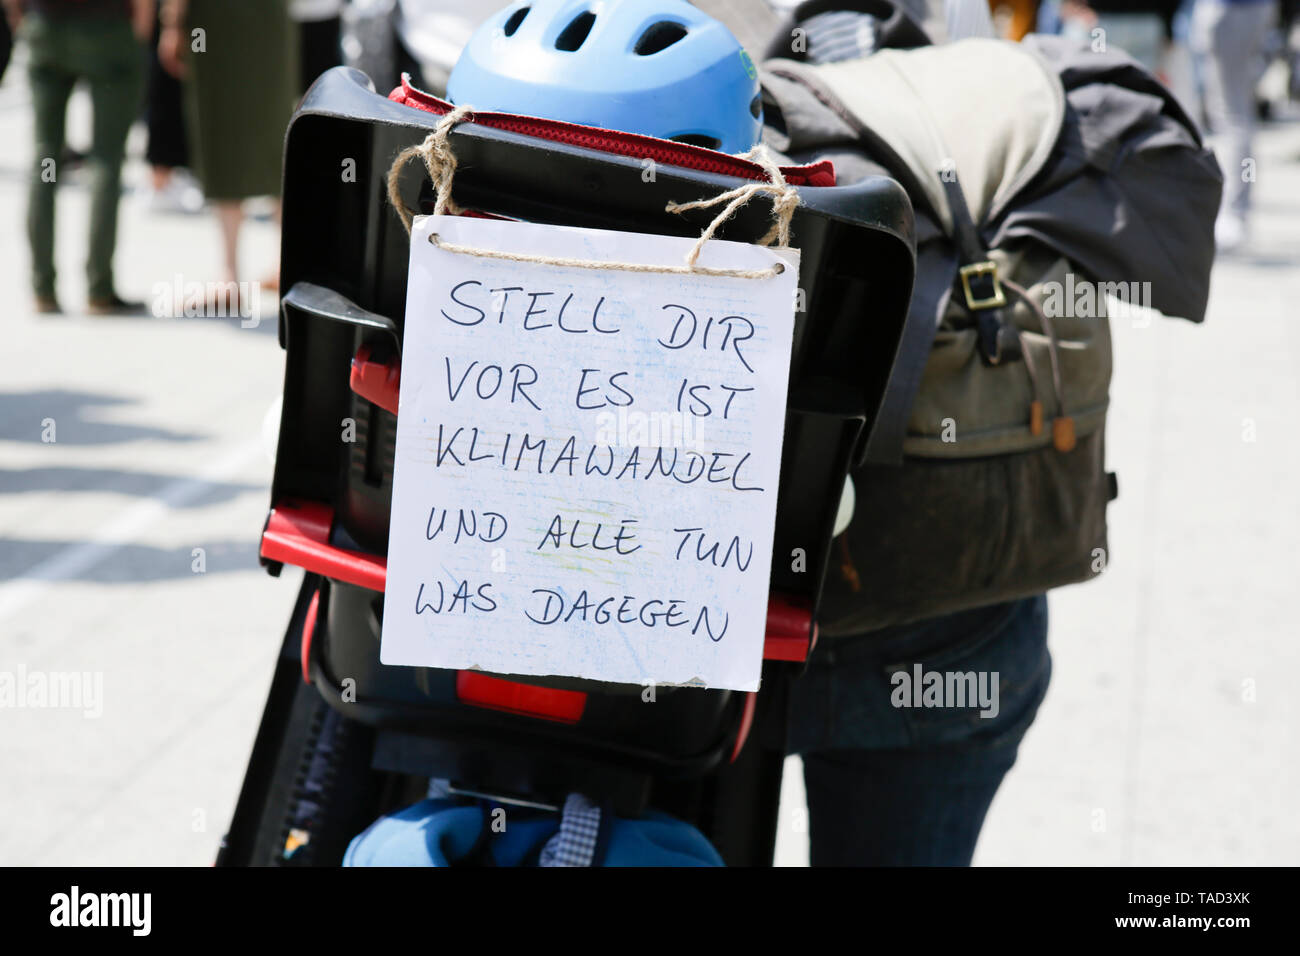 Frankfurt, Germany. 24th May 2019. A protester carries a sign that reads 'Imagine climate change is real and everyone is doing something about it'. Around 4,500 young people marched through Frankfurt to the European Central Bank, to protest against the climate change and for the introduction of measurements against it. The protest took place as part of an Europe wide climate strike, two days ahead of the 2019 European elections. - Stock Image